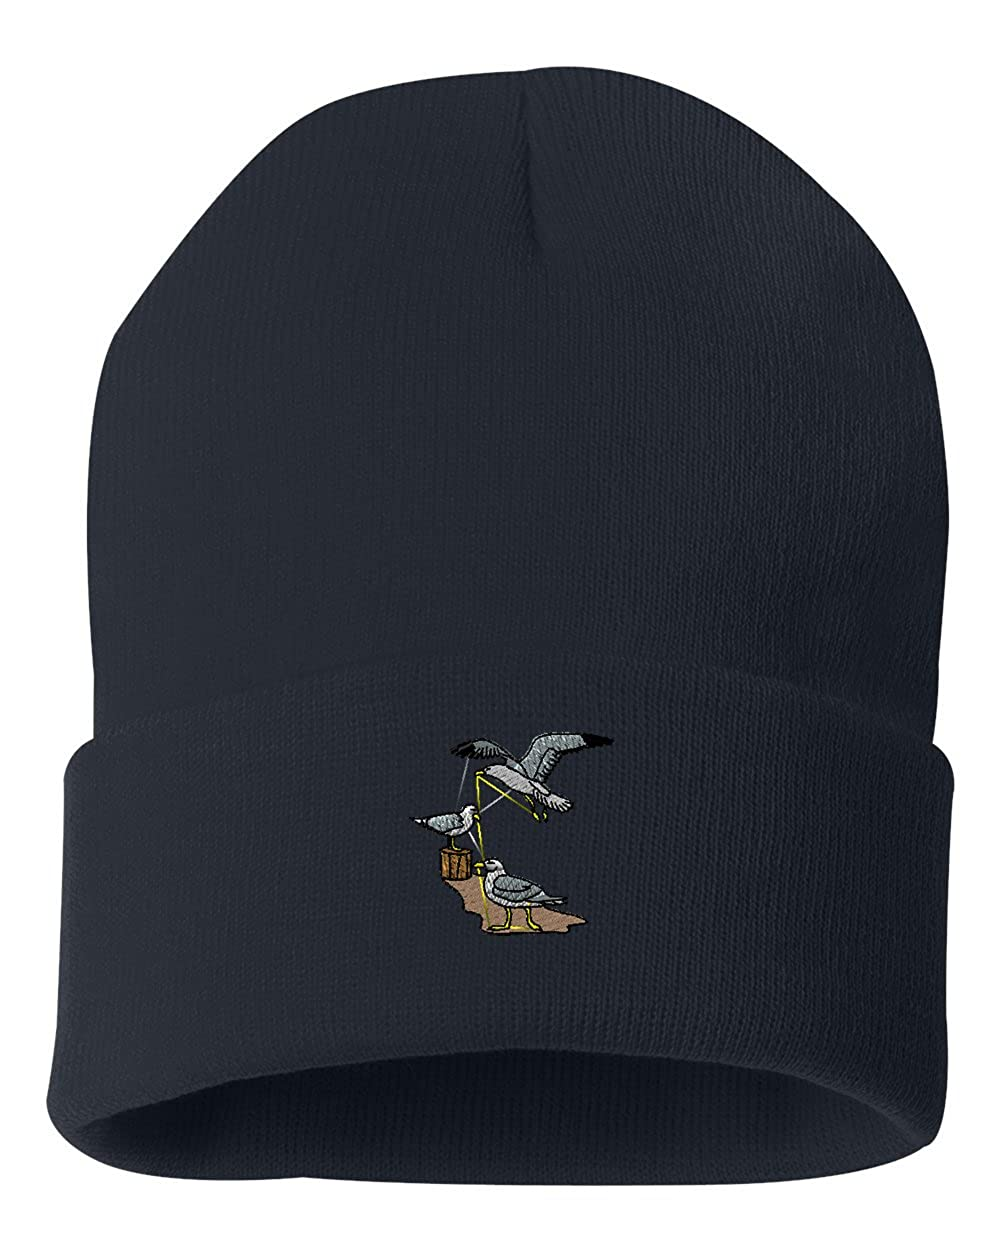 Seagulls Custom Personalized Embroidery Embroidered Beanie